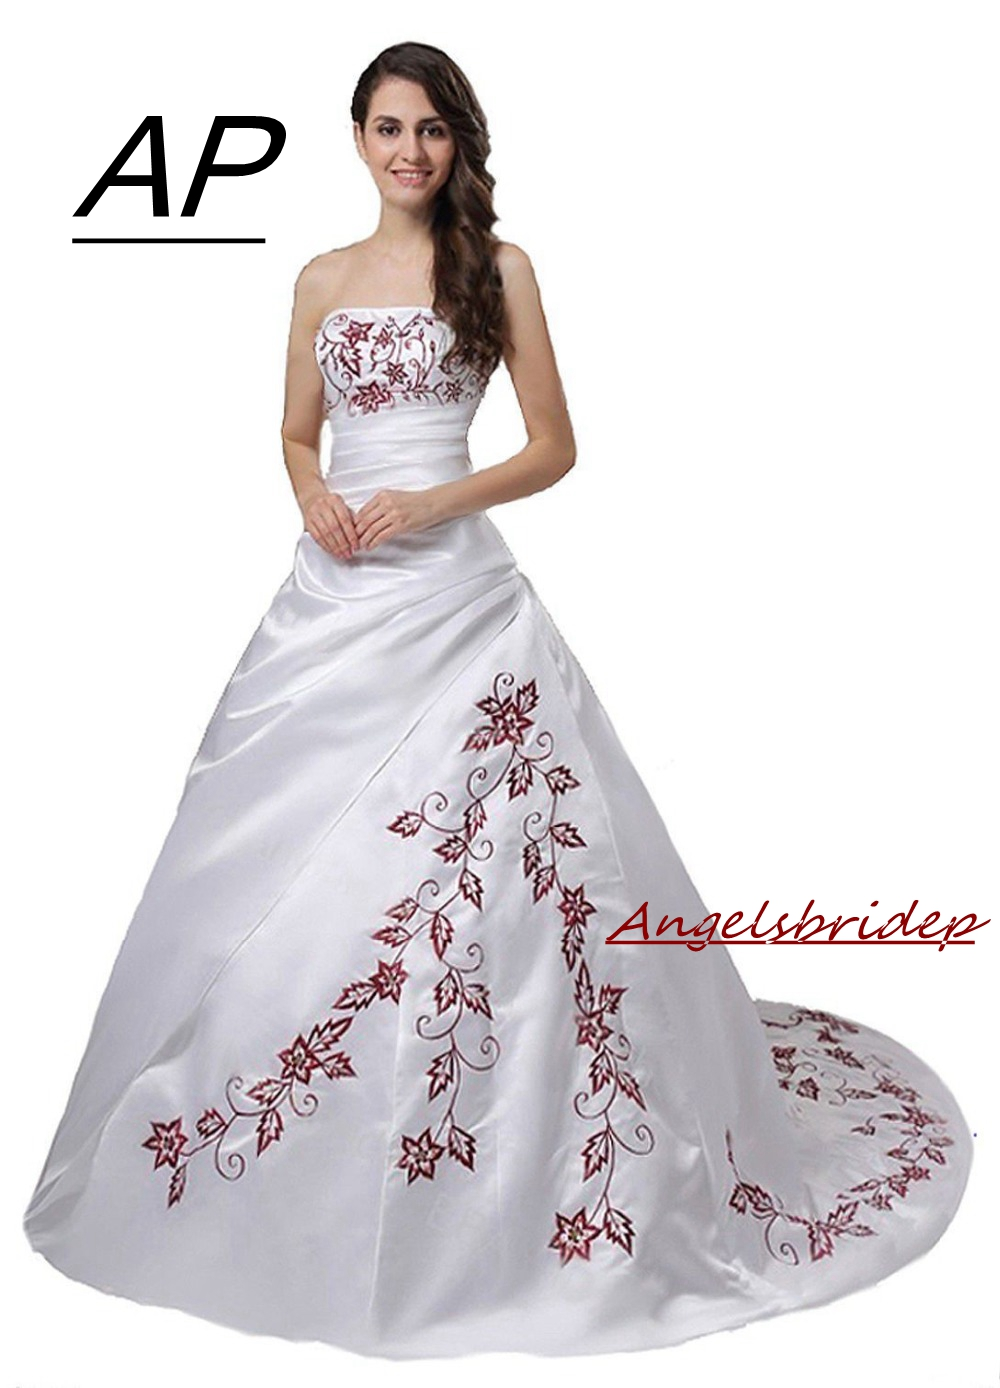 ANGELSBRIDEP Plus Size Ball Gown Wedding Dress Unique Red Embroidery Satin Vestidos De Noiva Formal Bride